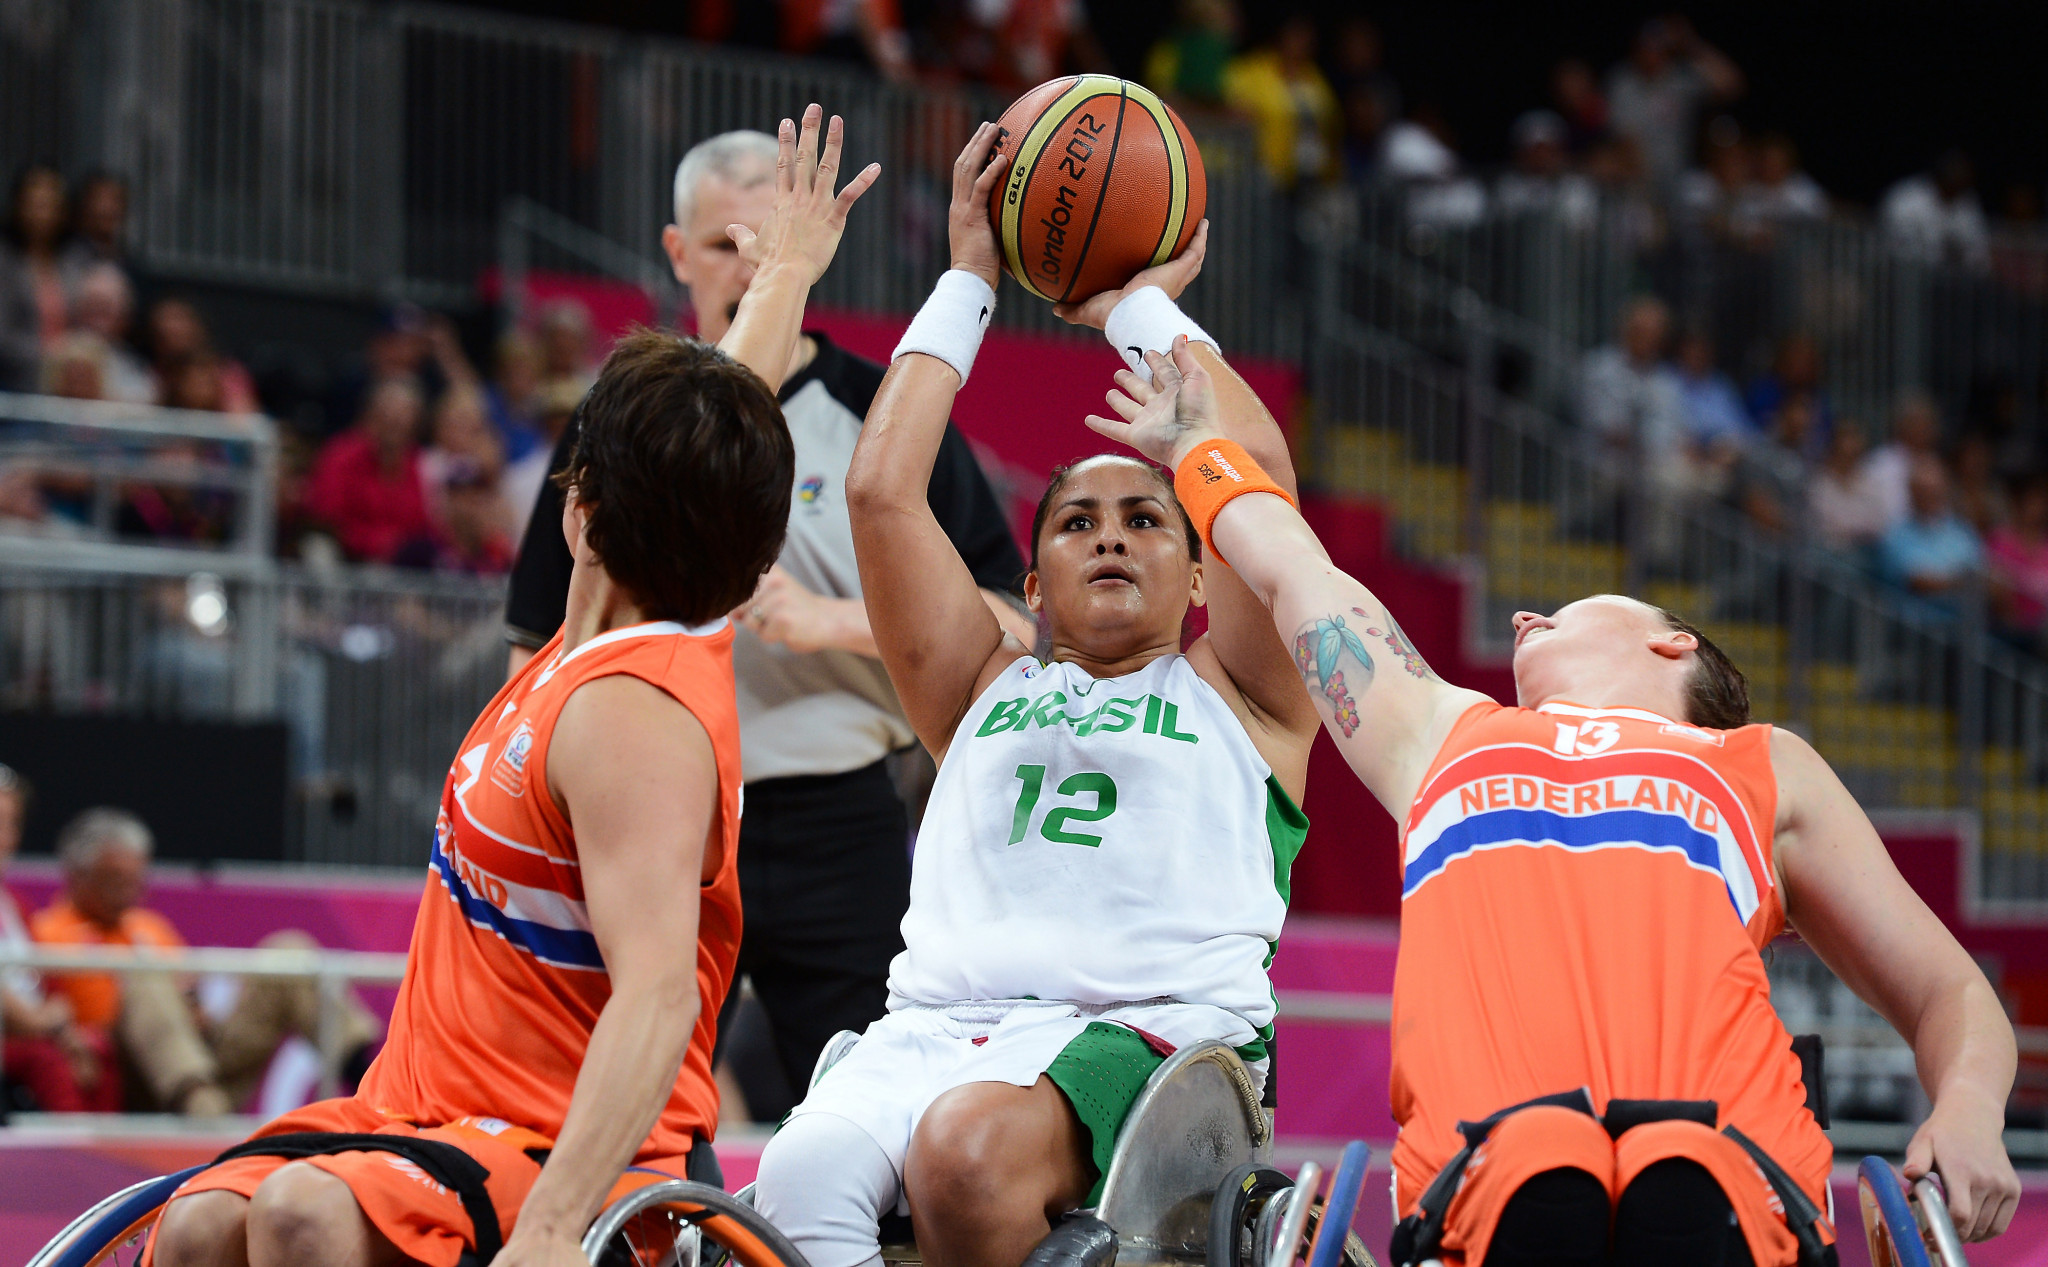 Brazilian wheelchair basketball players suspended following sexual abuse claims by team-mate